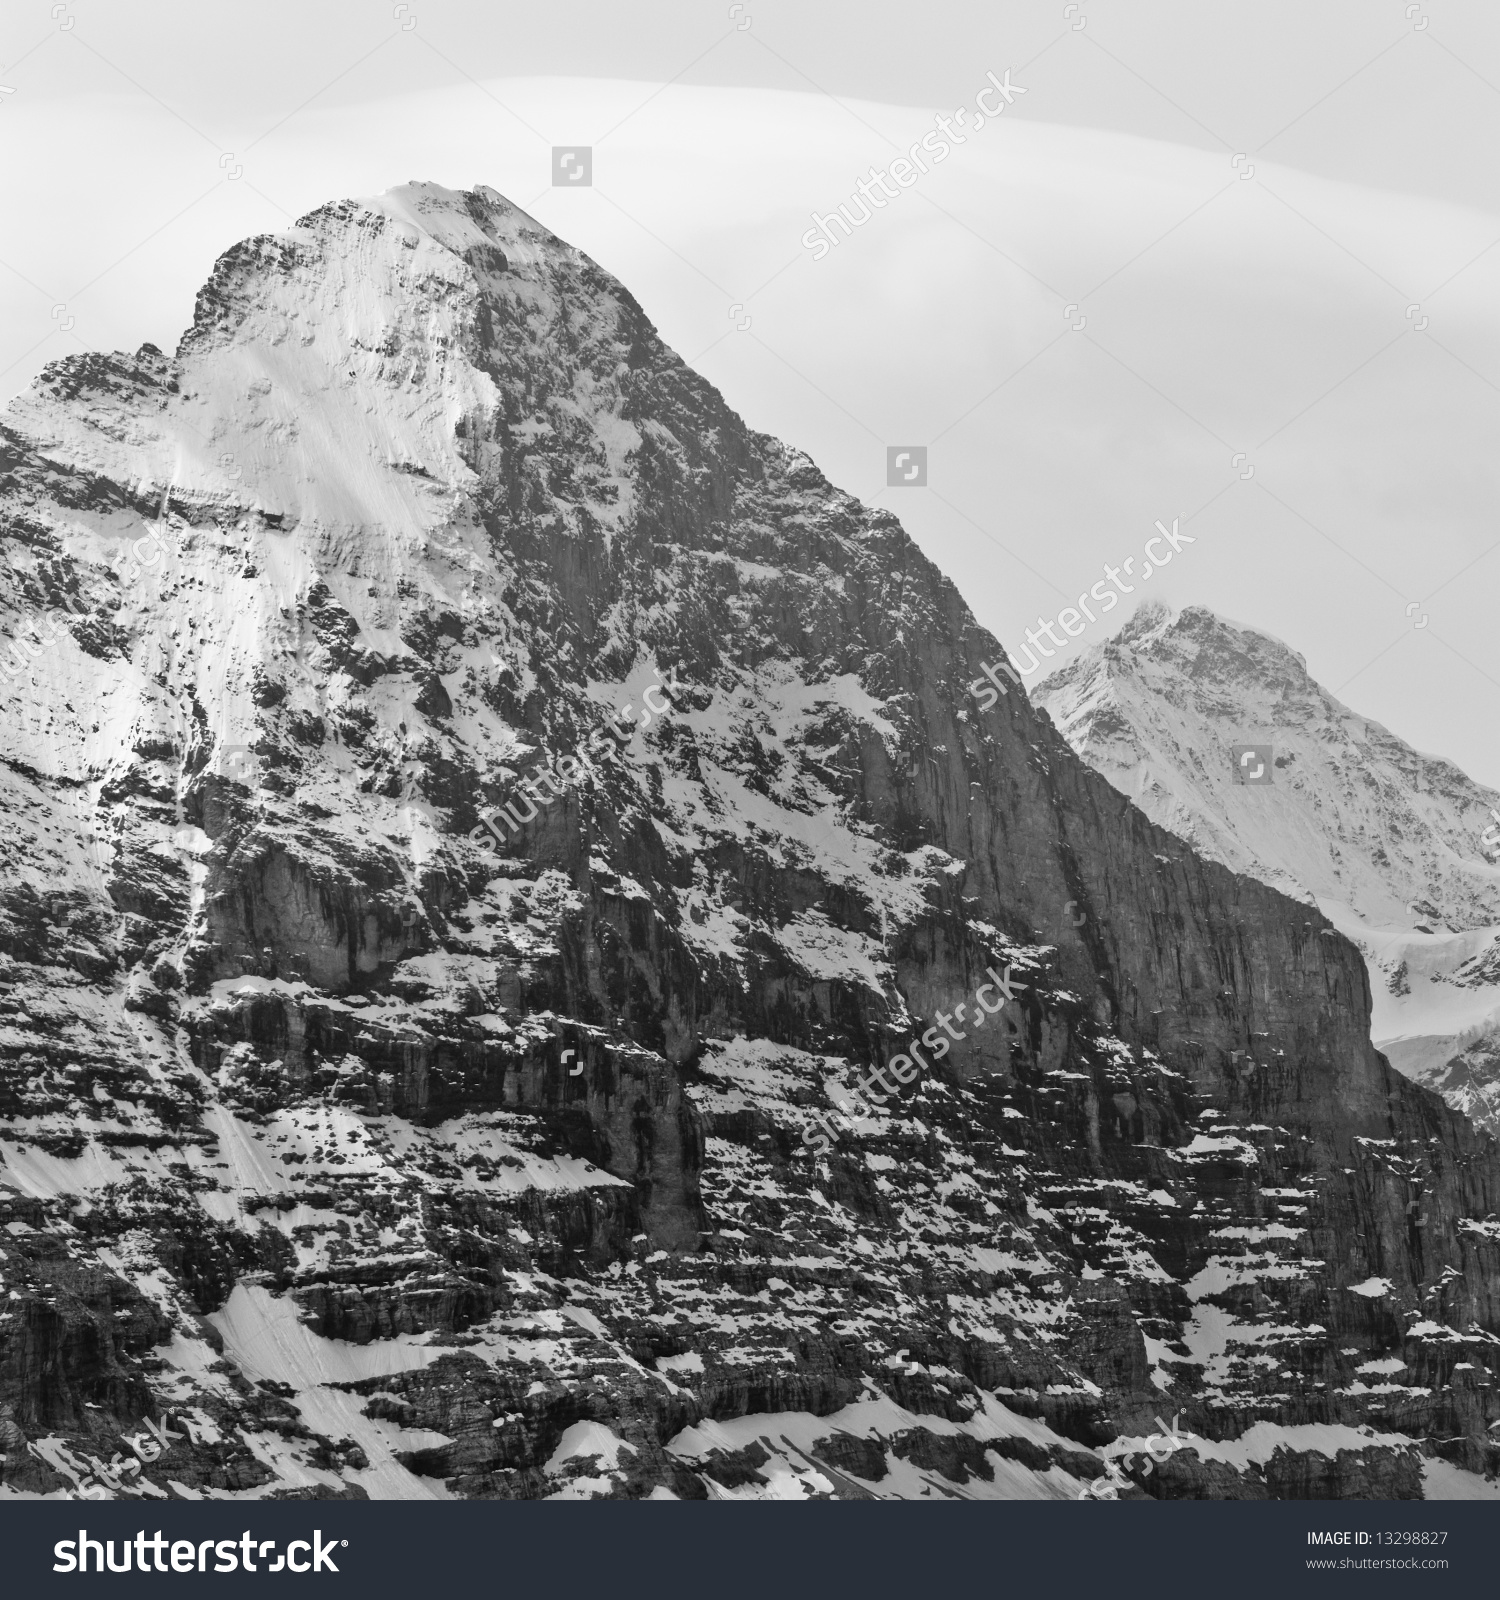 Black And White Image Of Eiger North Face, Switzerland. Stock.